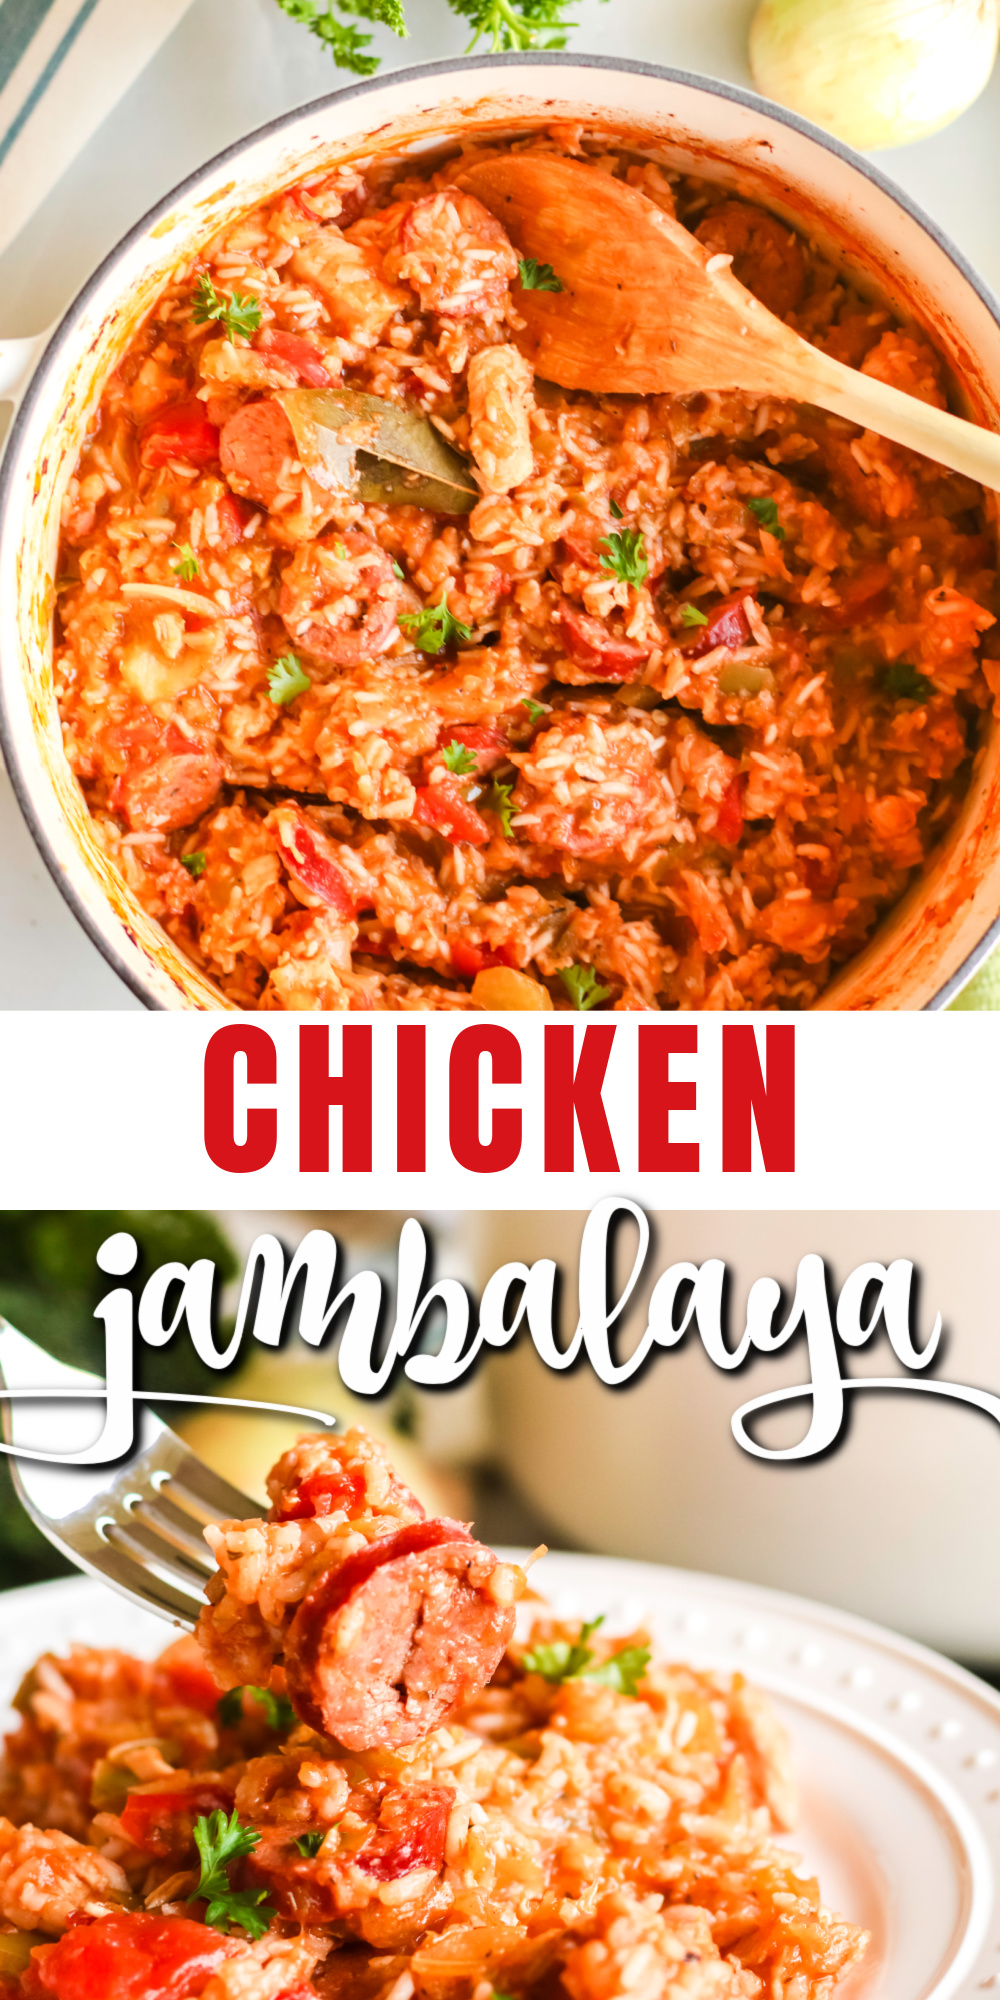 This chicken jambalaya recipe is a unique and classic recipe often made in the south. It's a delicious, filling recipe that's made with chicken, sausage, bell peppers, onion, celery, and delicious seasonings. It's the perfect easy family recipe to serve a big crowd and makes great leftovers.